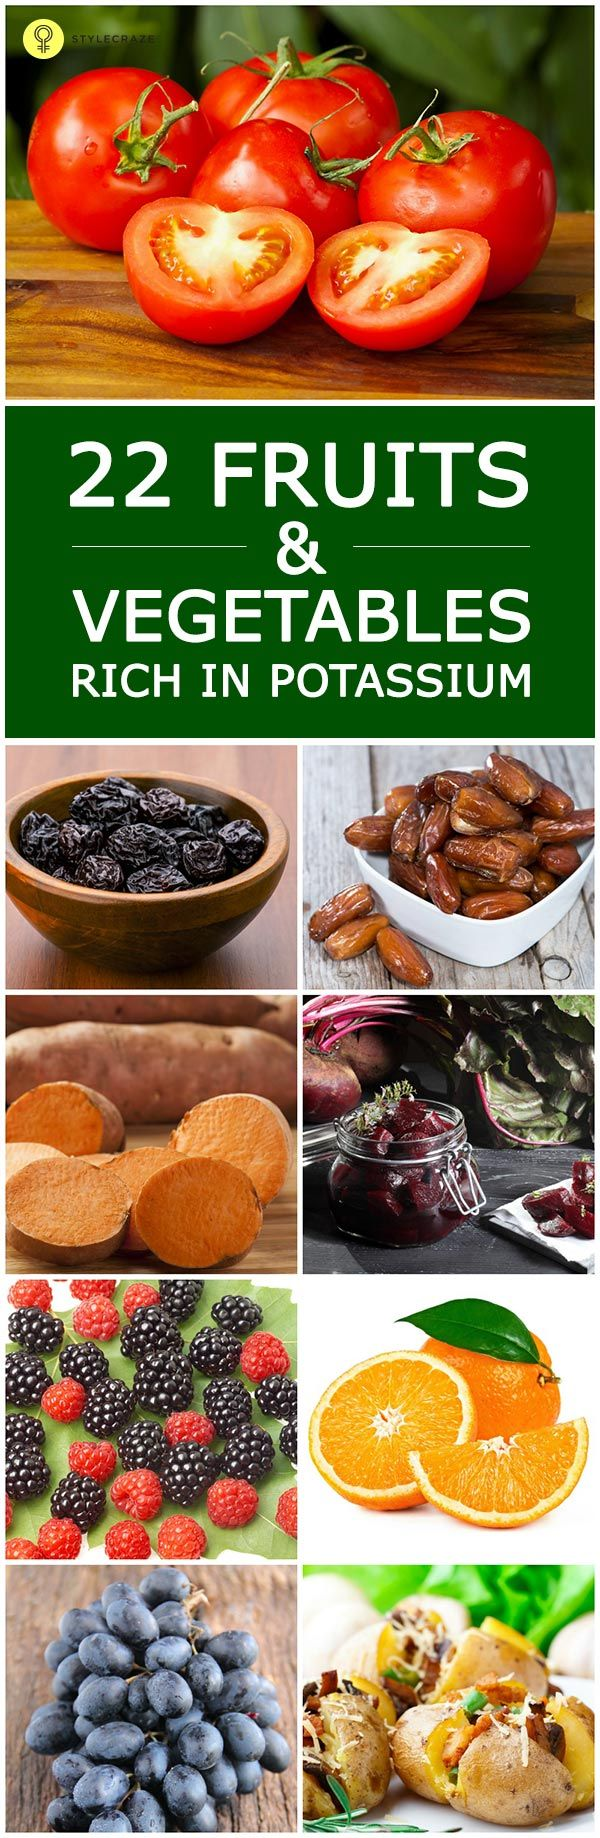 Sodium-rich Foods To Include In Our Diet